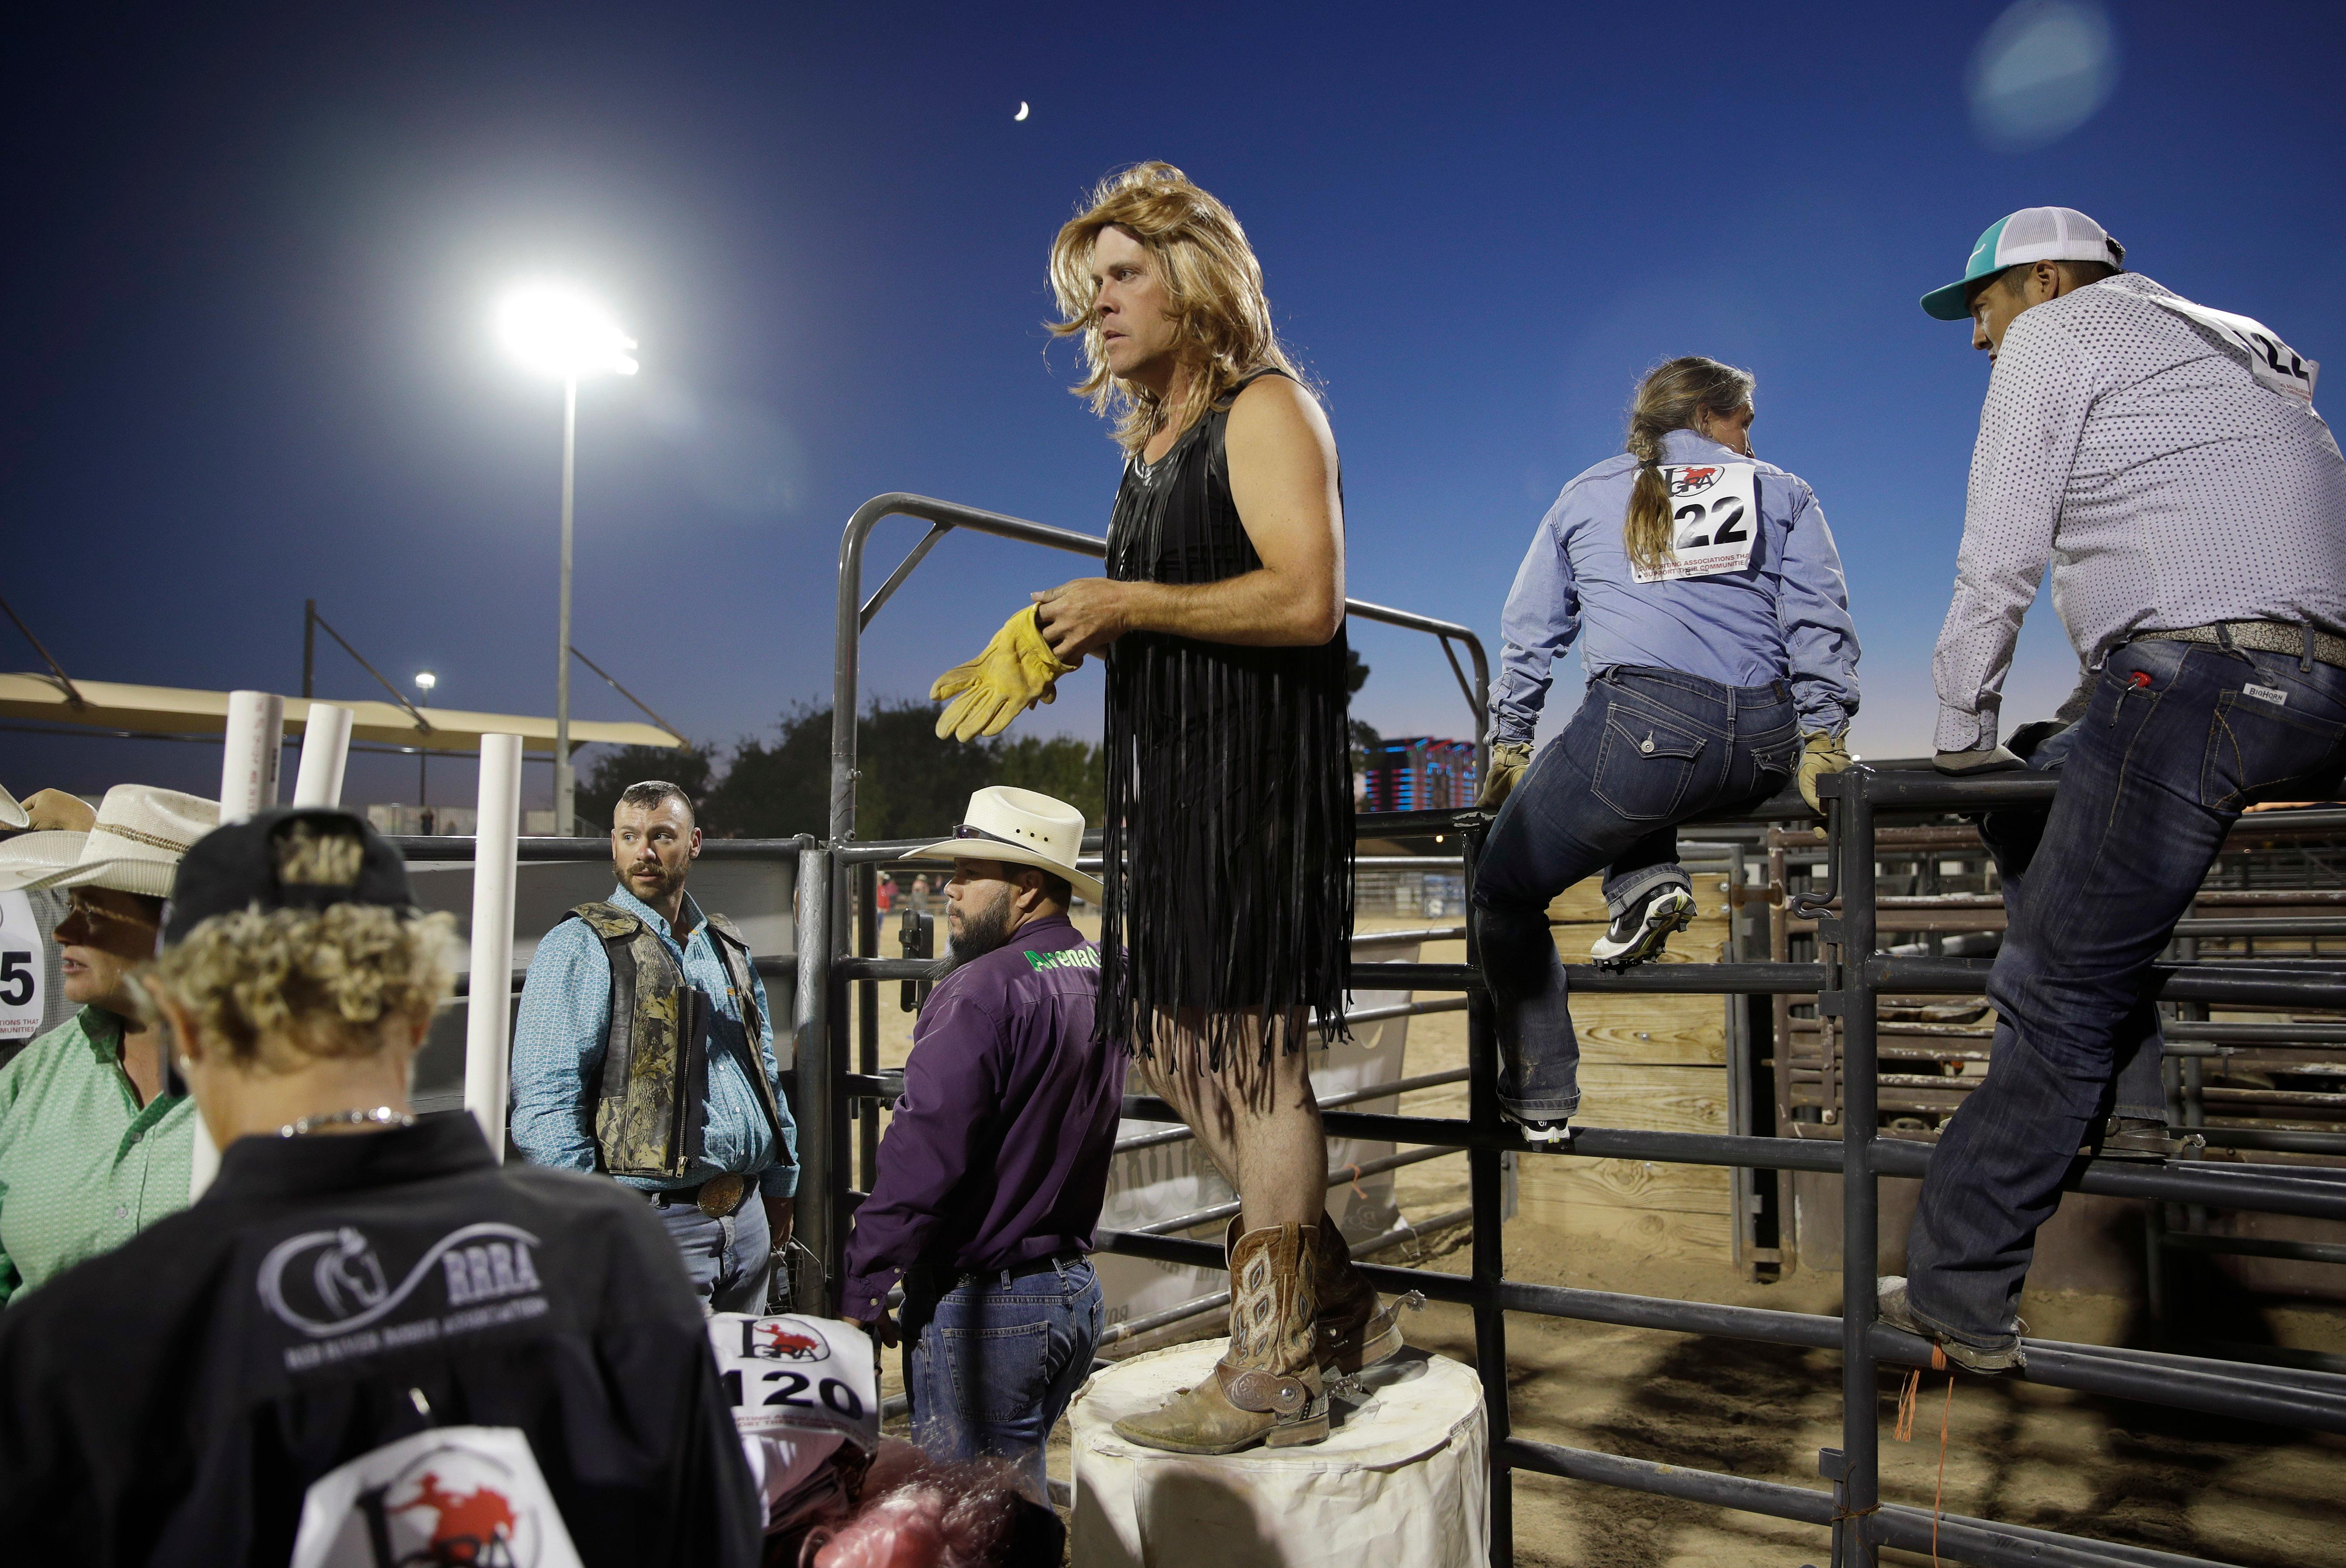 In this Sept. 24, 2017, photo, David Lawson, center, dons gloves before competing in the wild drag race event at the Bighorn Rodeo in Las Vegas. The event requires two competitors to control a steer while a third, dressed in drag, must ride the animal over a finish line. (AP Photo/John Locher)